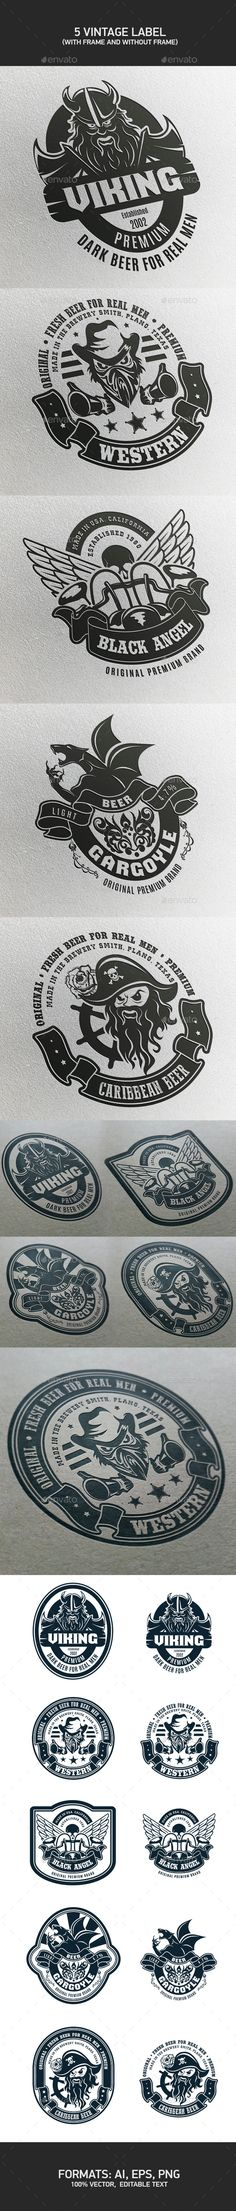 Vintage Labels to consider in logo form